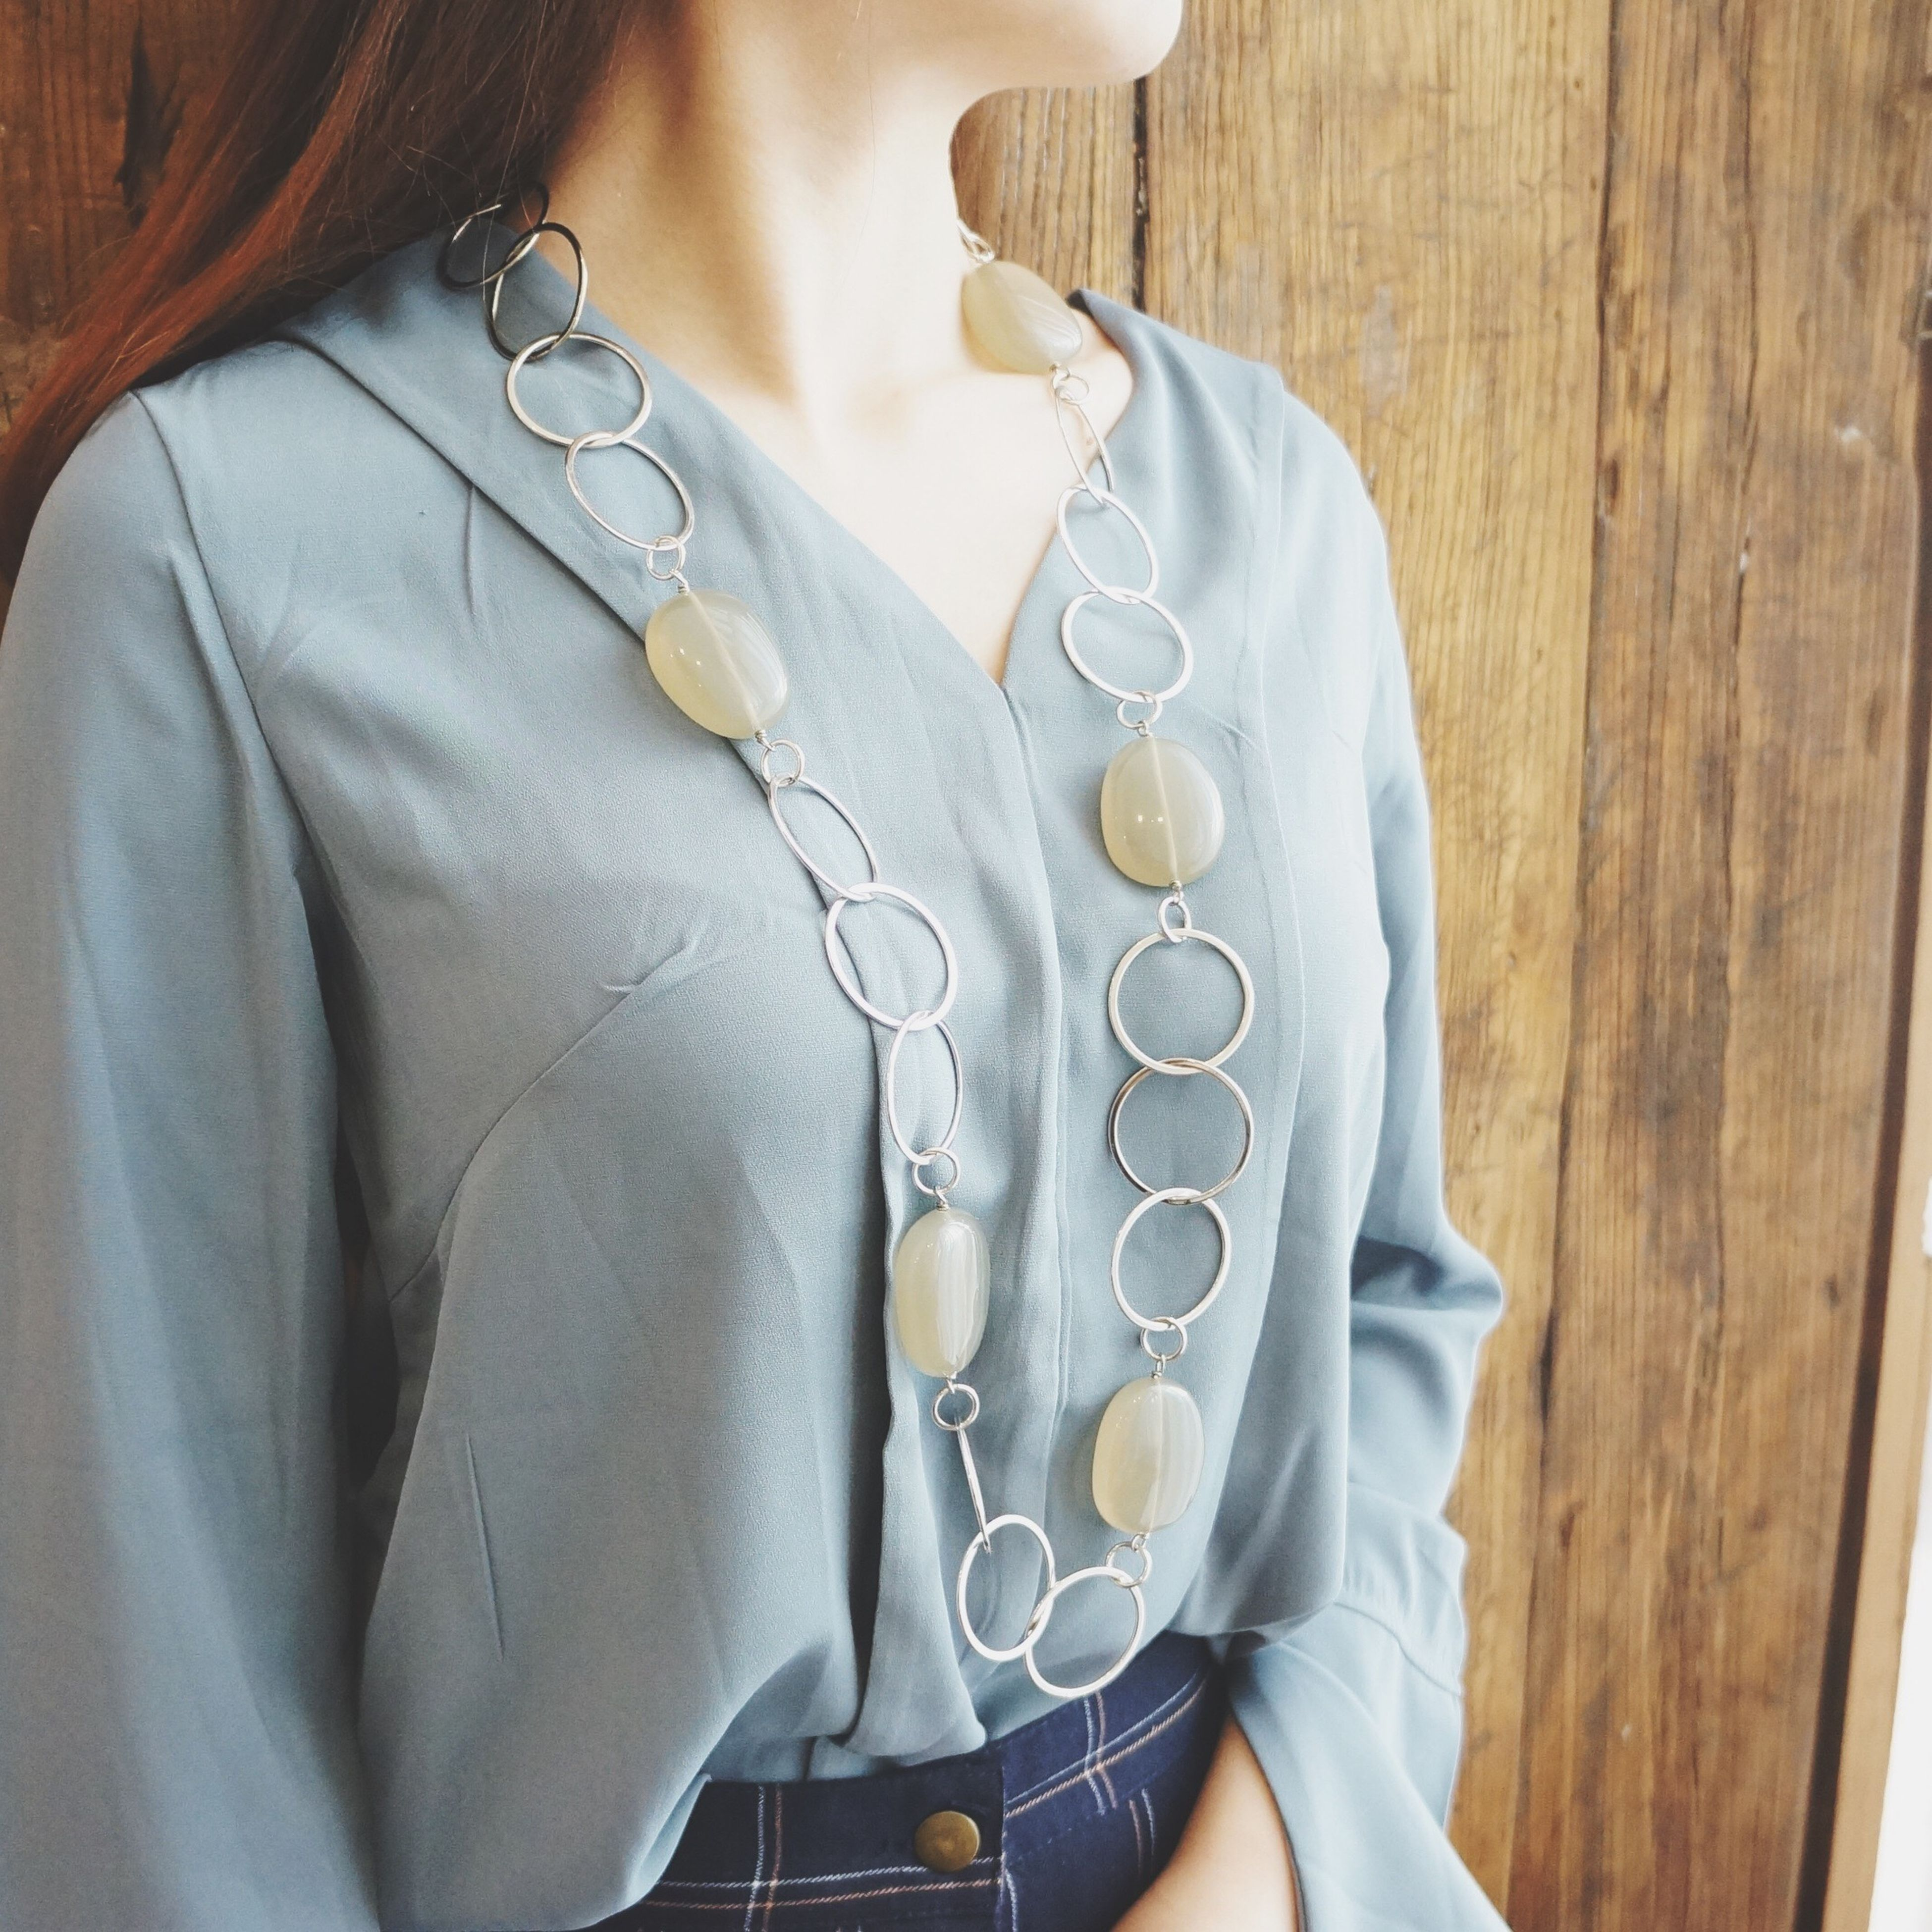 midsection, adults only, women, indoors, adult, one woman only, blouse, close-up, only women, people, one person, well-dressed, wedding dress, life events, day